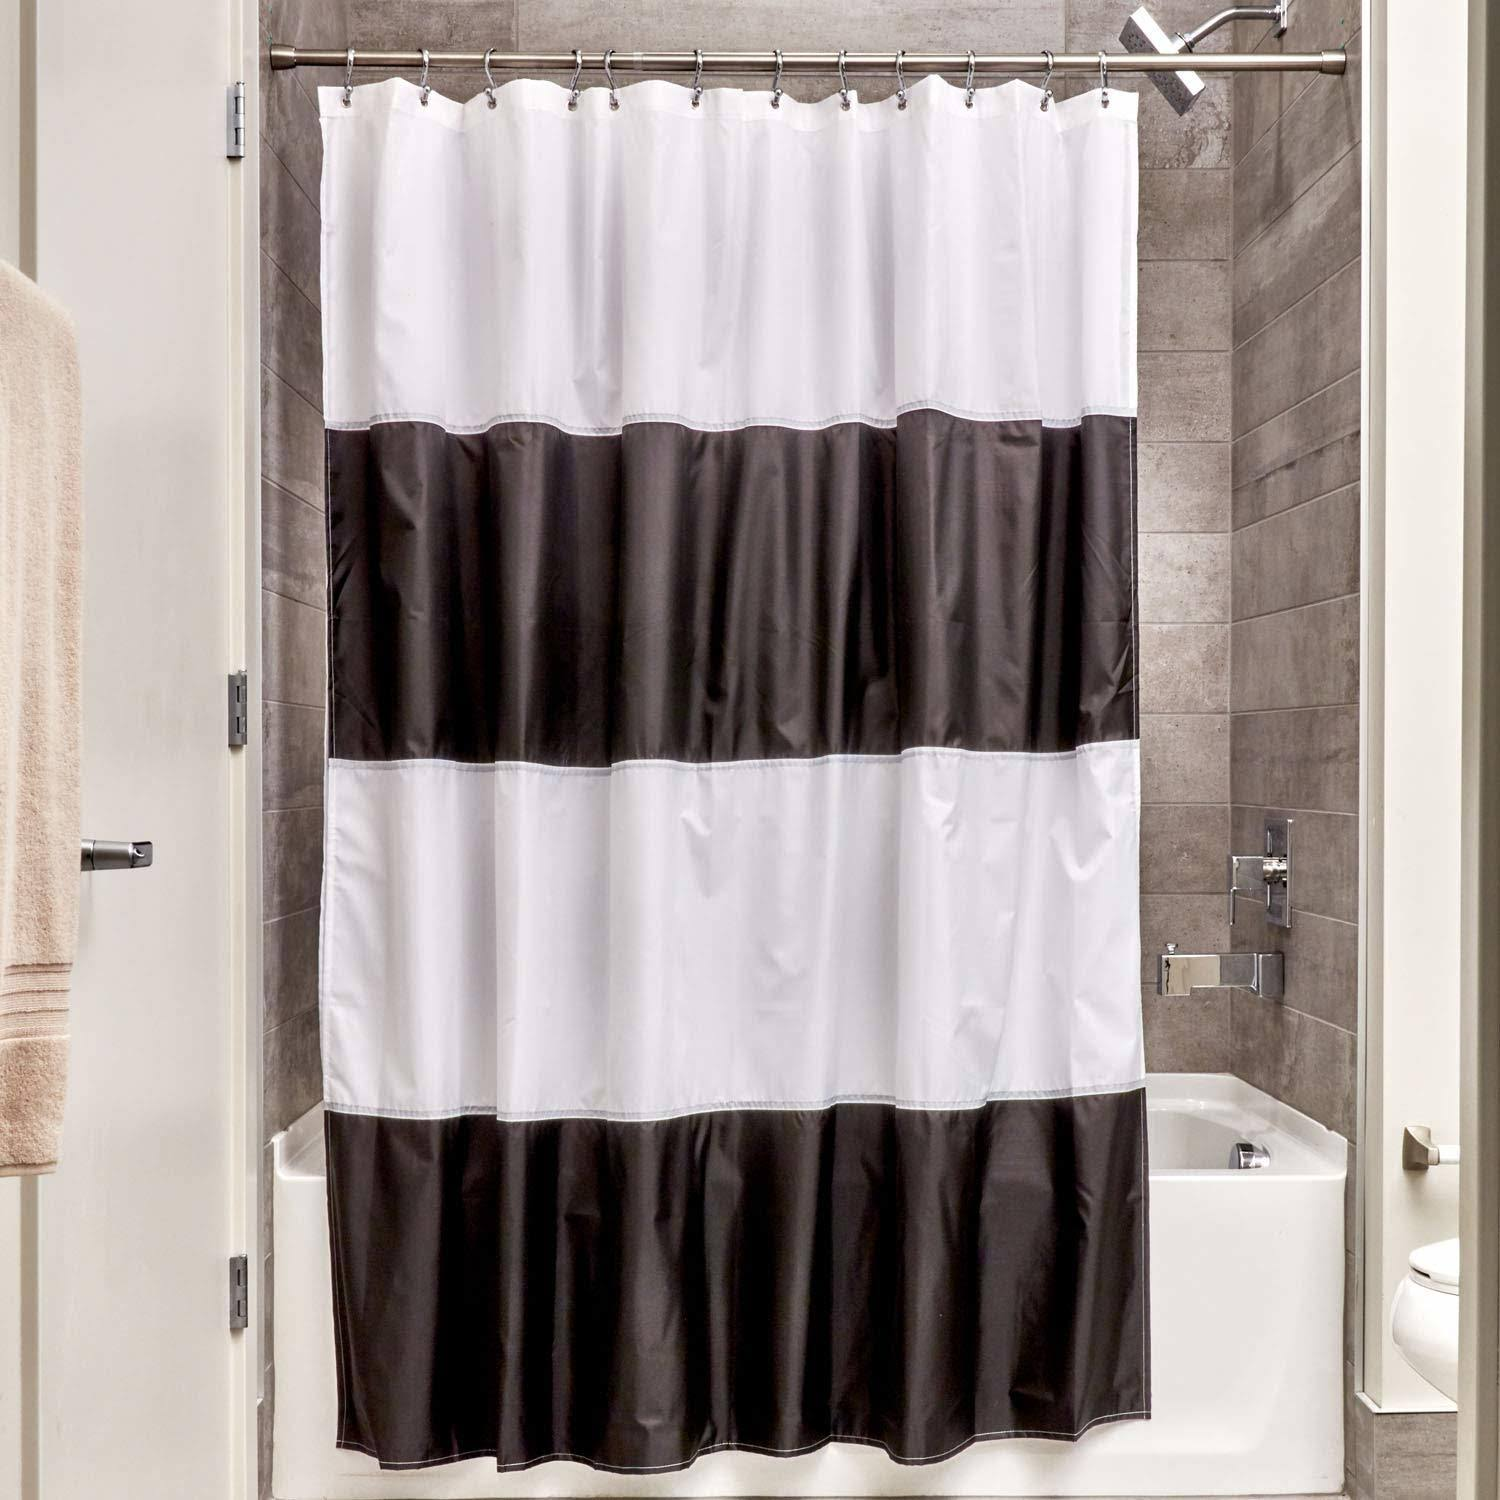 InterDesign Zeno Waterproof Shower Curtain Liner - Black/White, 180cm x 180cm